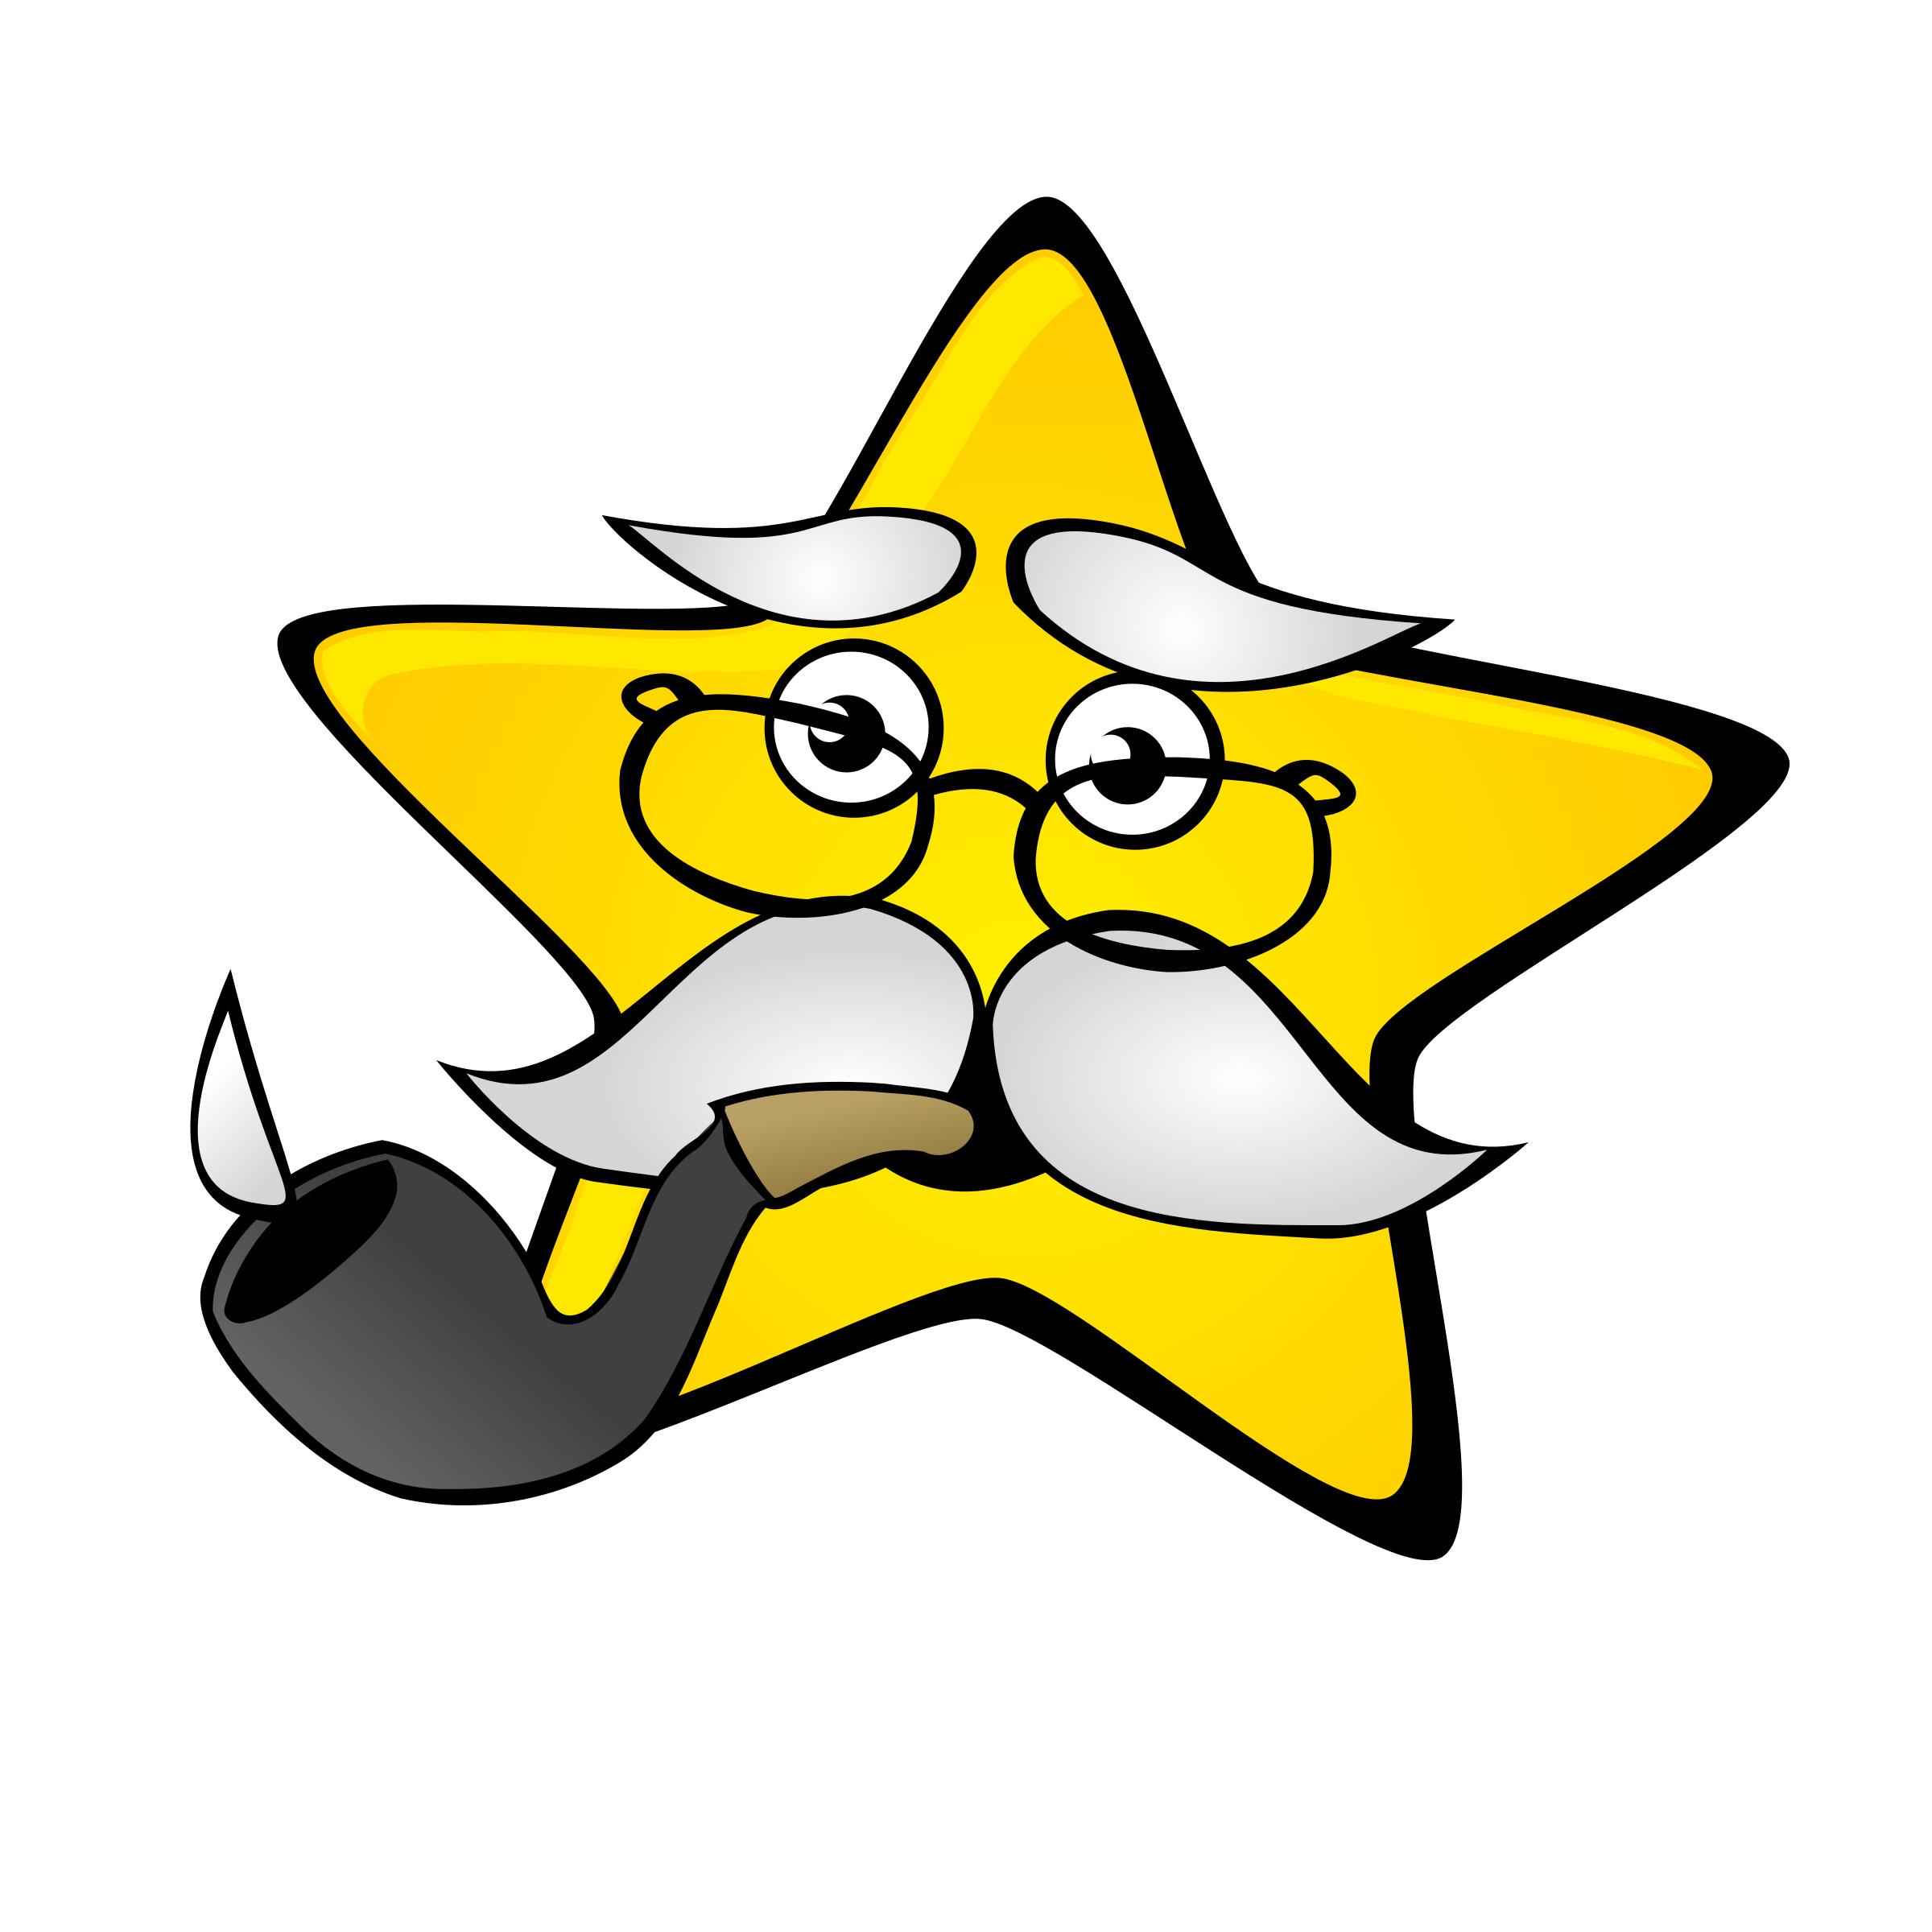 Images of group starry. Clipart stars cartoon